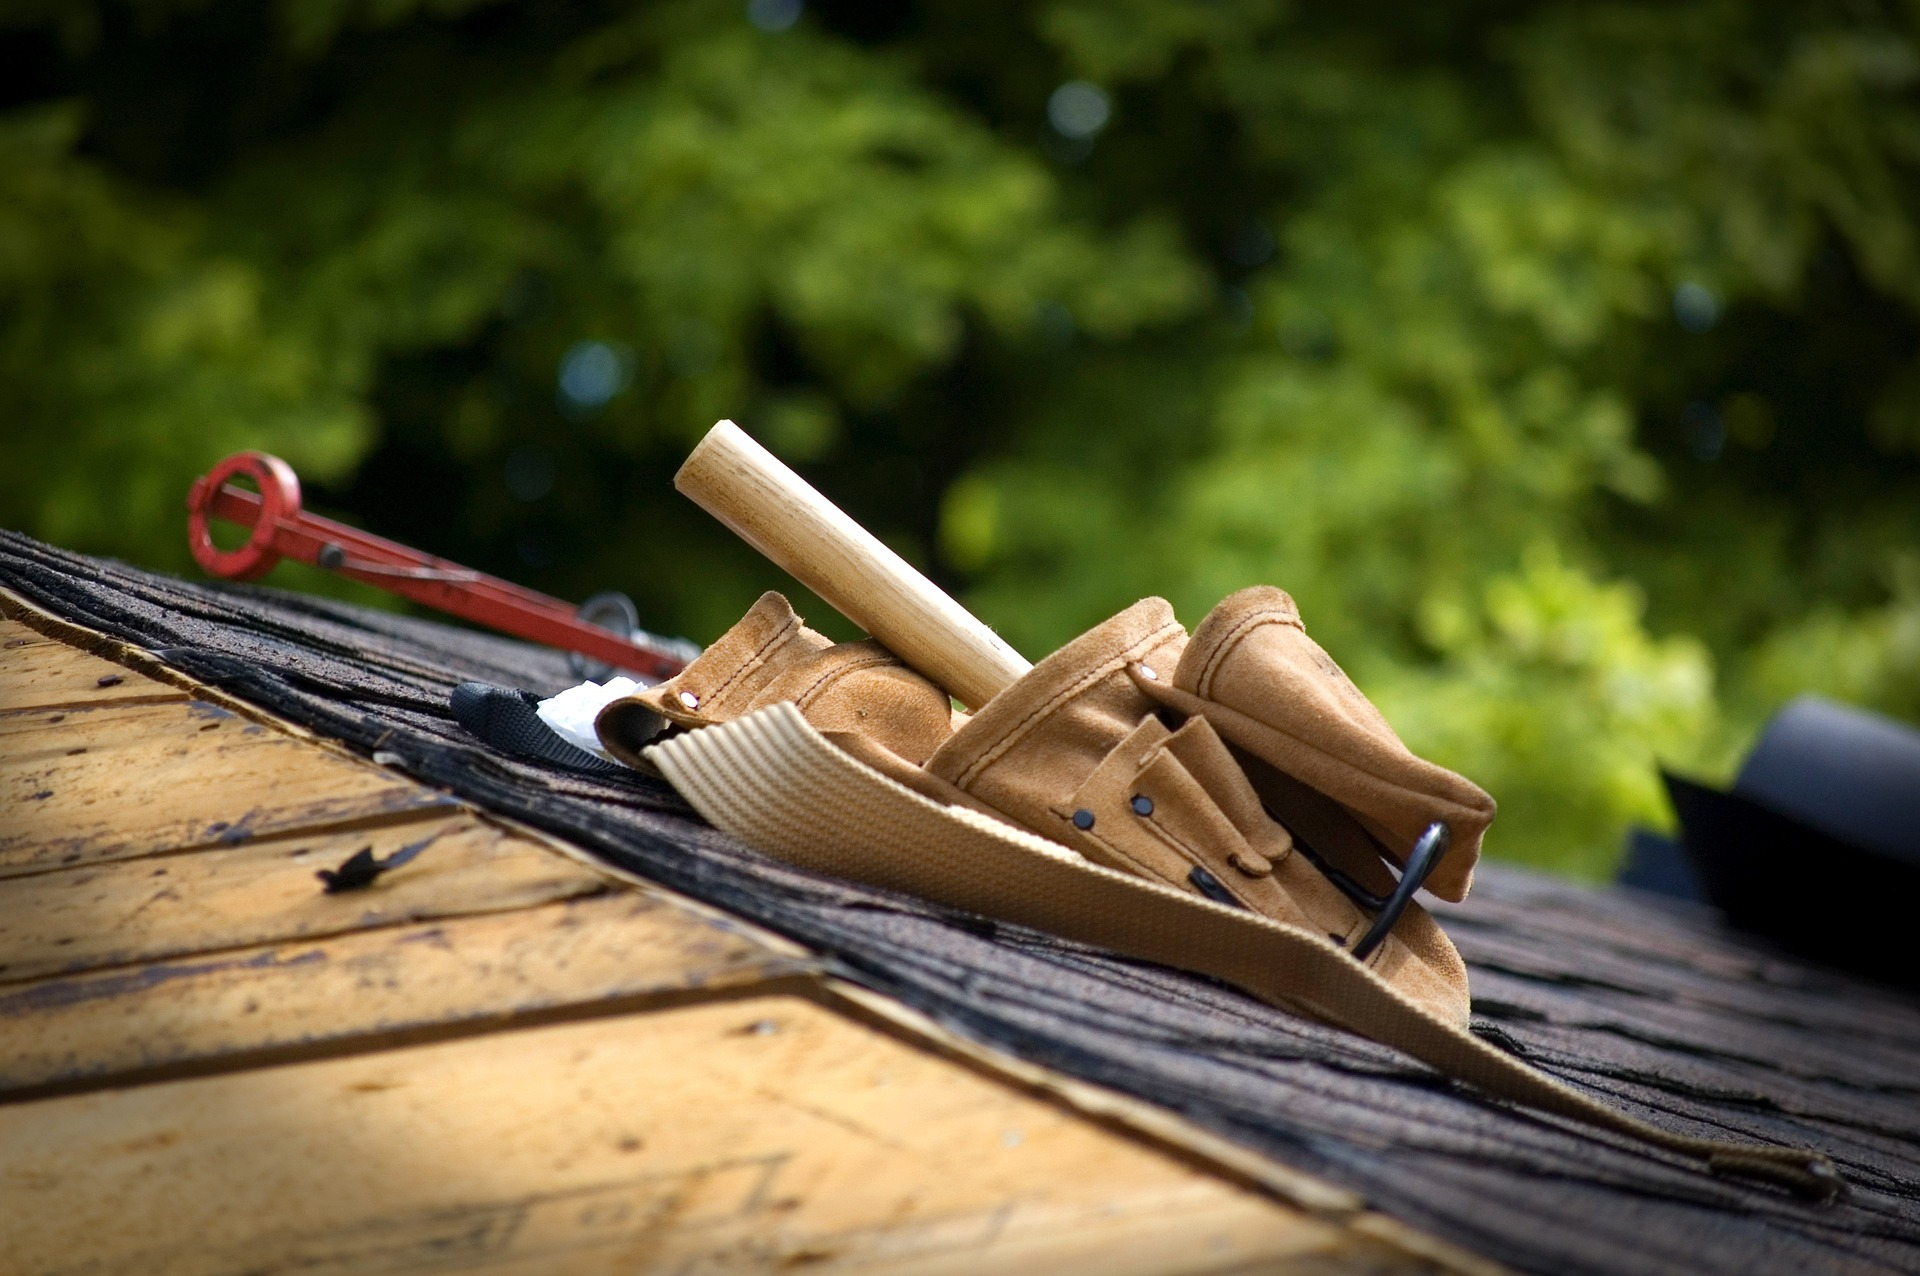 4 Considerations For Saving Time And Costs When Remodeling Roofs